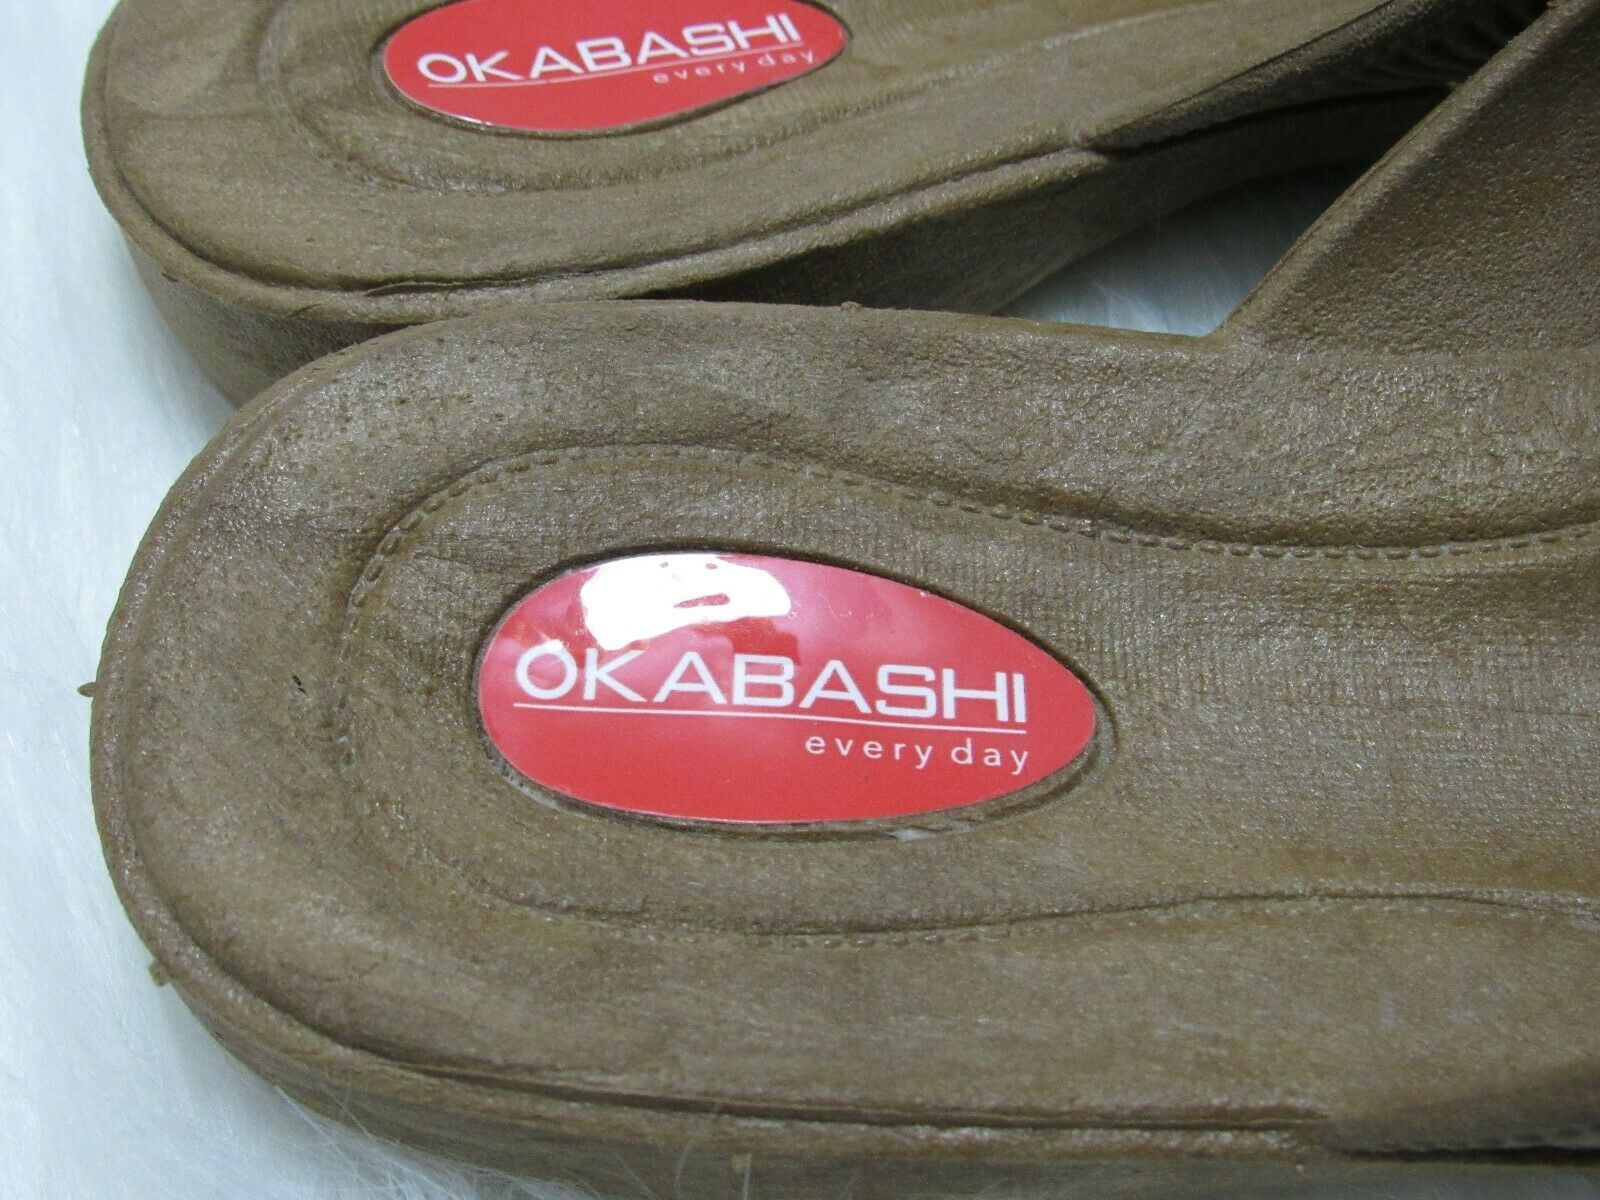 Okabashi Every Day Flip Flops Cross Strap Toffee Womens M L 8 9 Comfort Sandals